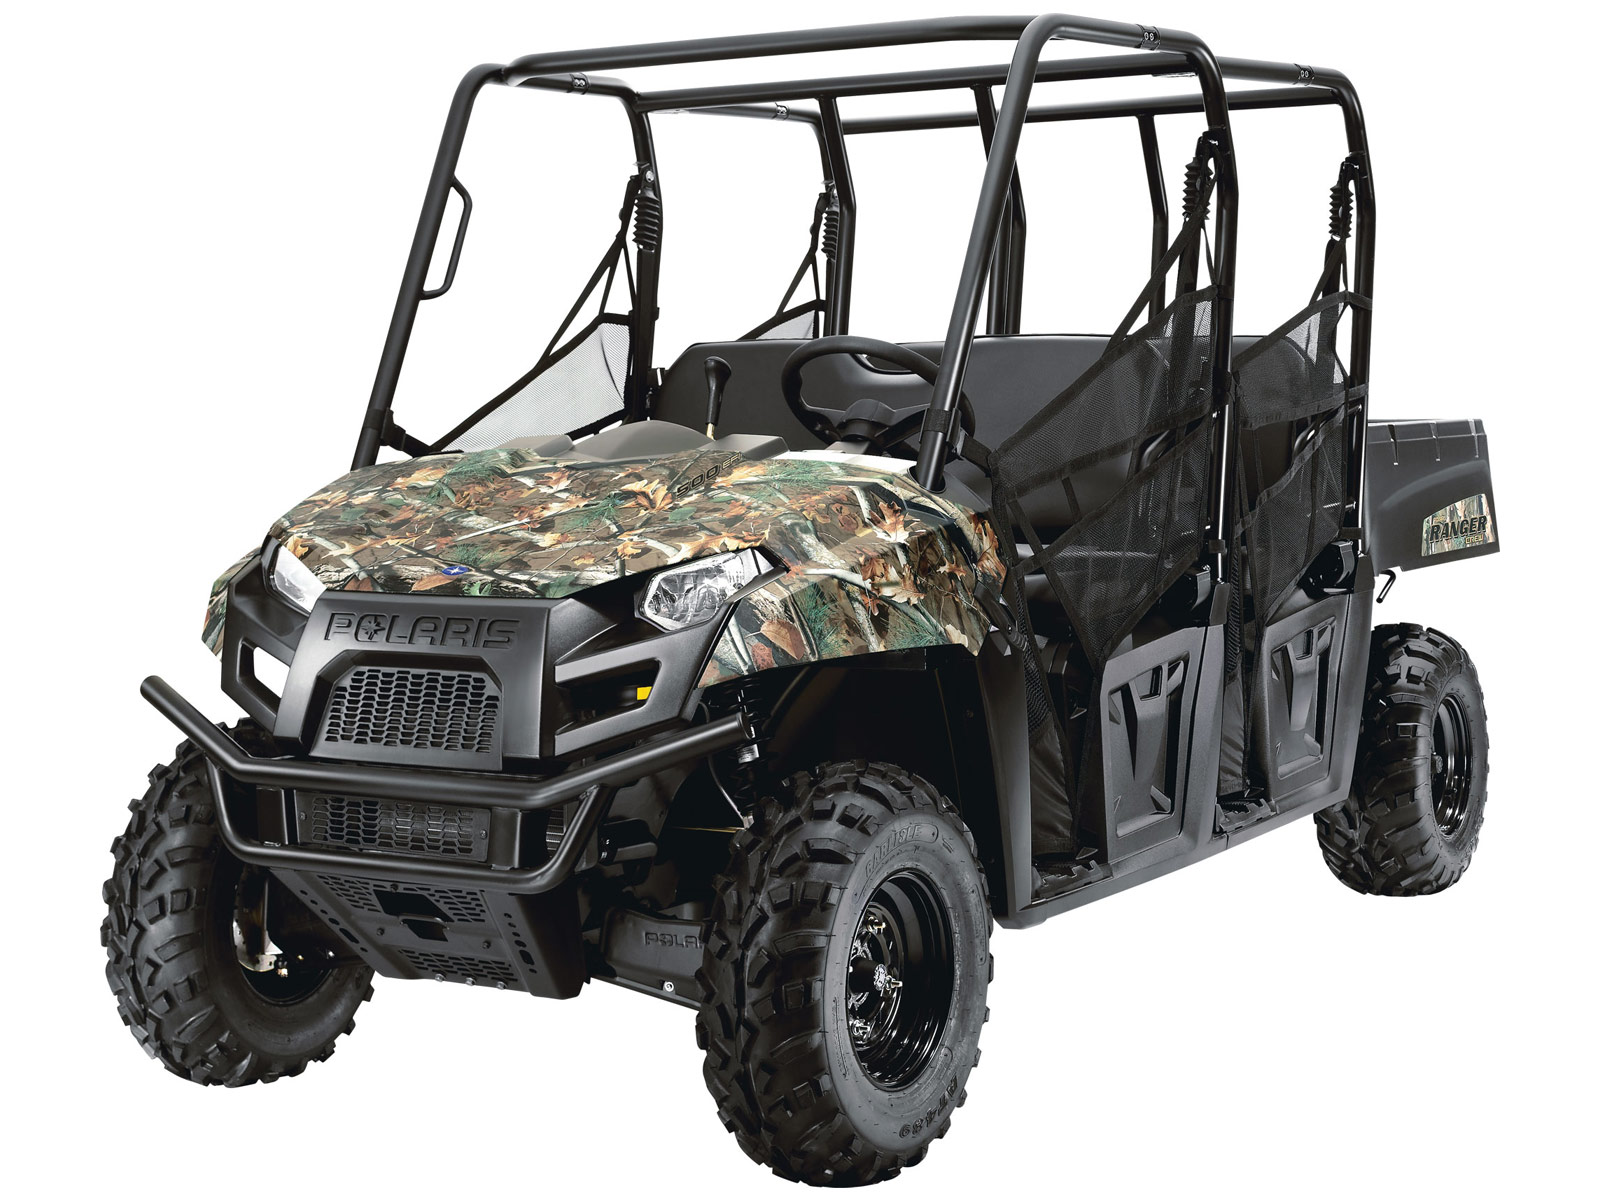 2012 Polaris Ranger 500 Manual